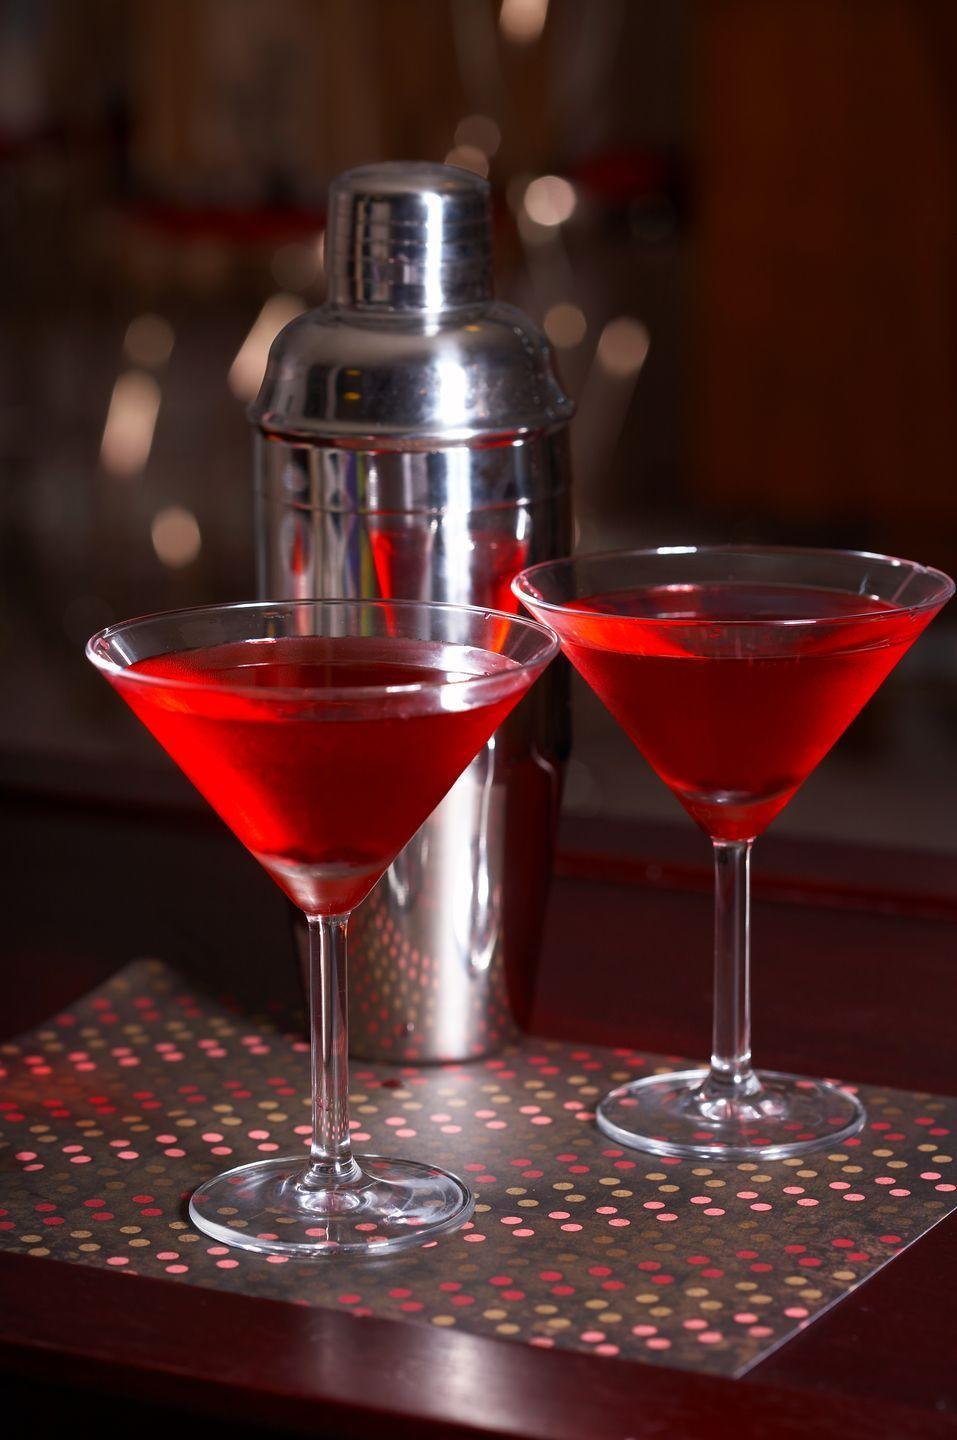 "<p>""My favorite holiday drink is a pomegranate martini! The color is perfect for the holidays, a red-hued cocktail topped off with a lime. It's light, refreshing, with a little sweetness. And there's nothing more sophisticated than drinking out of a martini glass."" — Keith Williams of Landscape Architecture firm <a href=""http://www.nieverawilliams.com/"" rel=""nofollow noopener"" target=""_blank"" data-ylk=""slk:Nievera Williams"" class=""link rapid-noclick-resp"">Nievera Williams</a>.</p><p><strong>Keith's Martini Recipe</strong></p><p><strong>Ingredients:</strong><br>1/4 cup sugar</p><p>3/4 cup vodka</p><p>1/2 cup pomegranate juice</p><p>1/3 cup fresh lime juice</p><p>1/4 Cointreau</p><p>Lime slices, for garnish<strong><br><br>Directions:</strong><br>Combine sugar, vodka, pomegranate juice, lime juice, and Cointreau. Stir well. Garnish with lime slices. </p>"